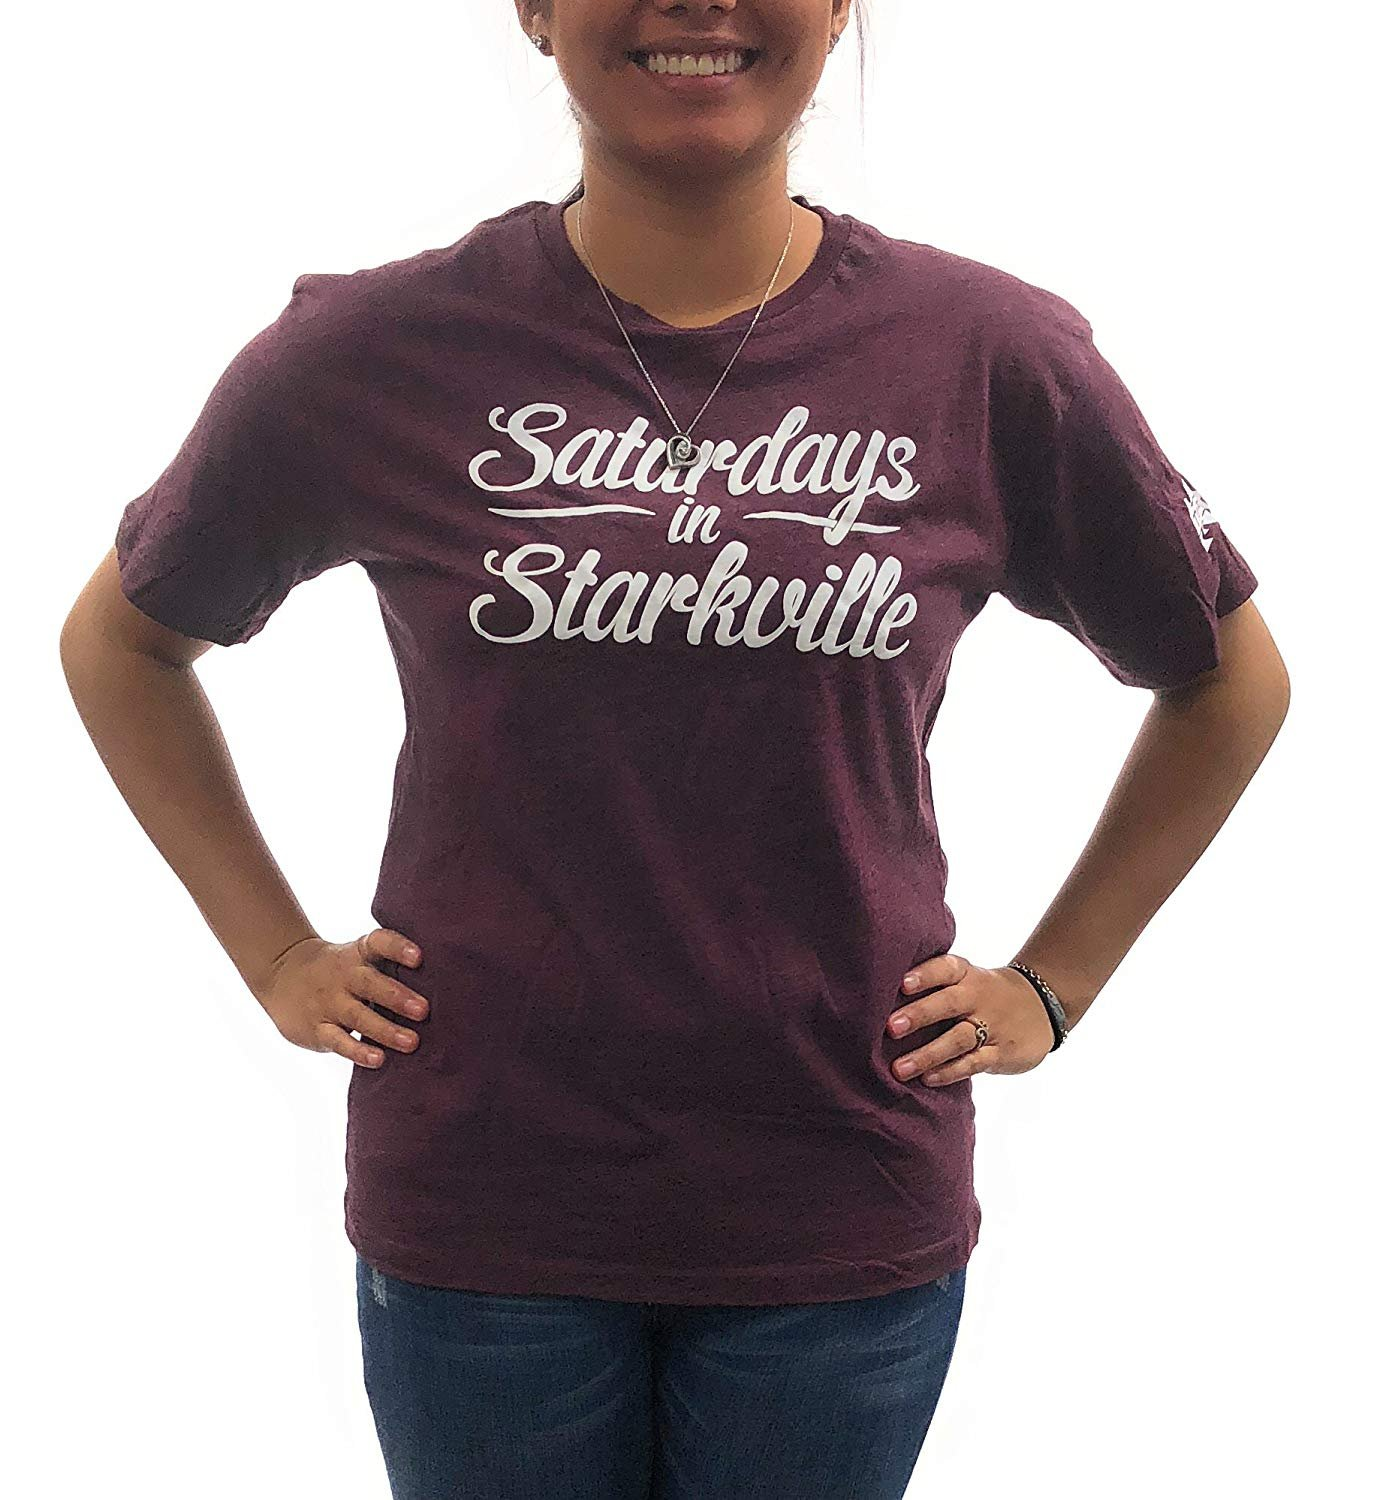 Royce Apparel Mississippi State Bulldogs Womens T-Shirt University Clothing Apparel Saturday in Starkville